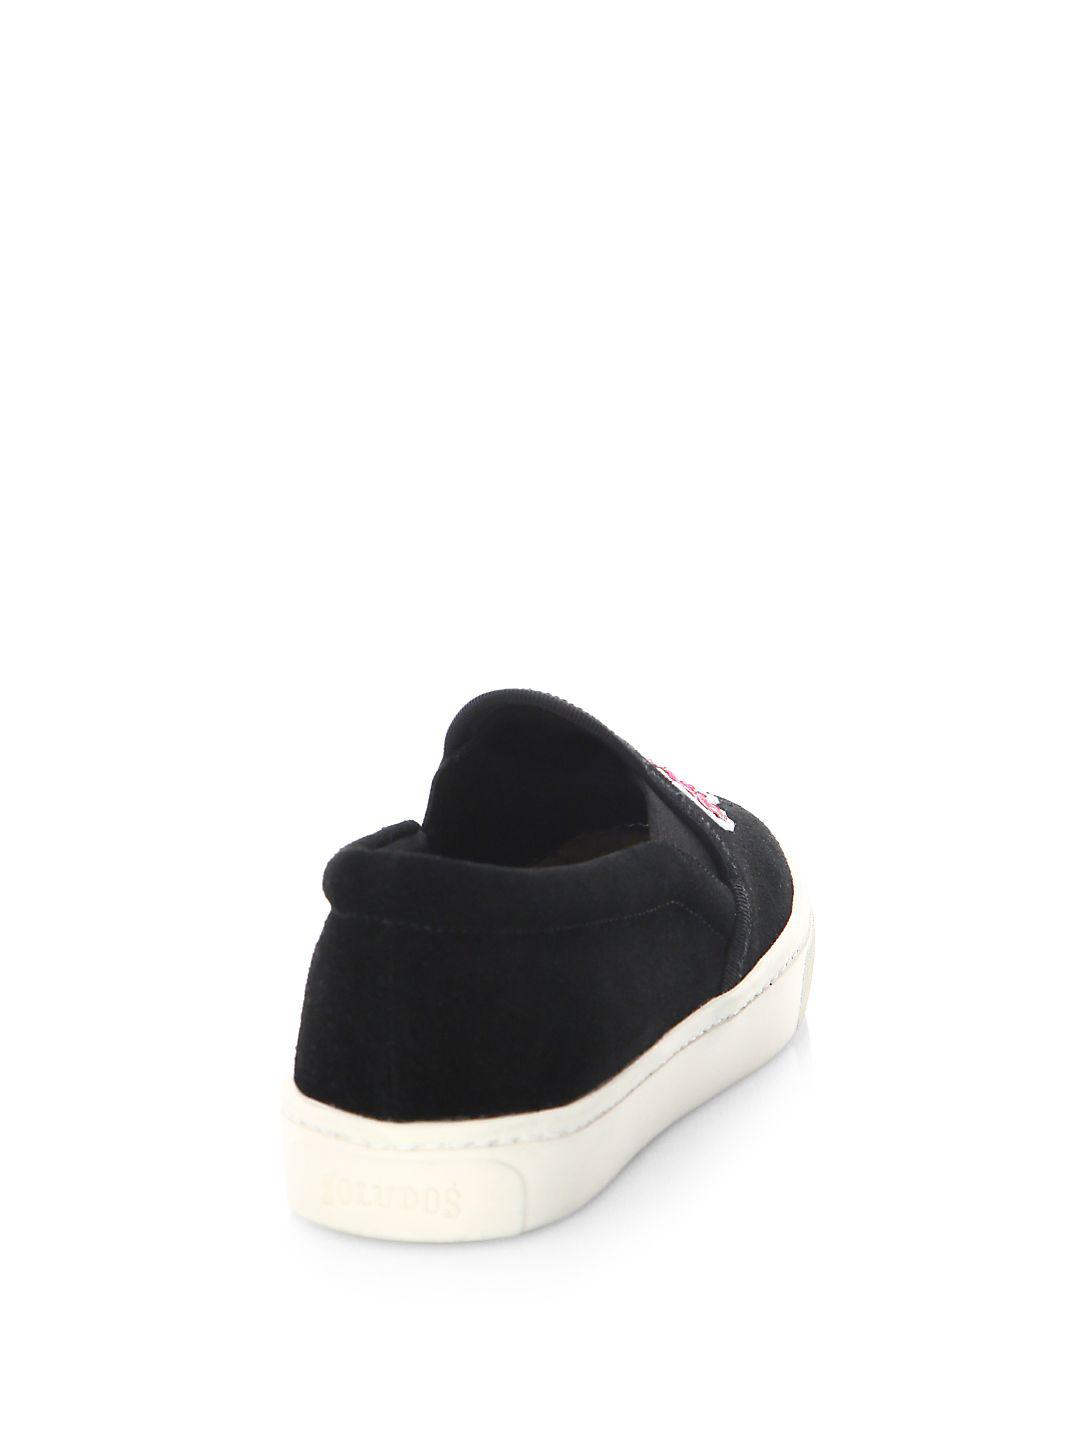 Soludos Day Of The Dead Leather Sneakers in Black